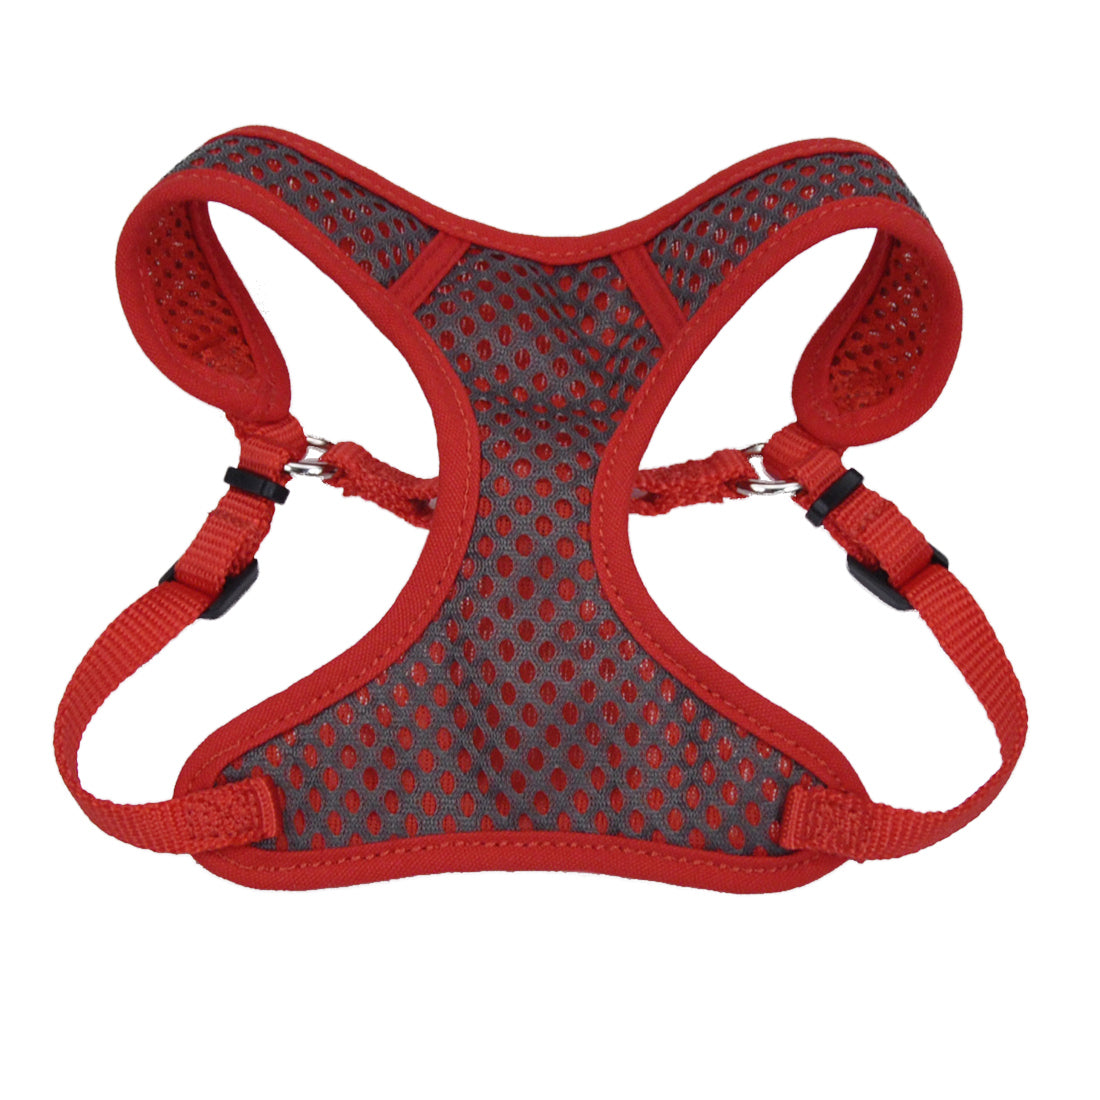 Coastal Sport Wrap Adjustable Harness Small Red